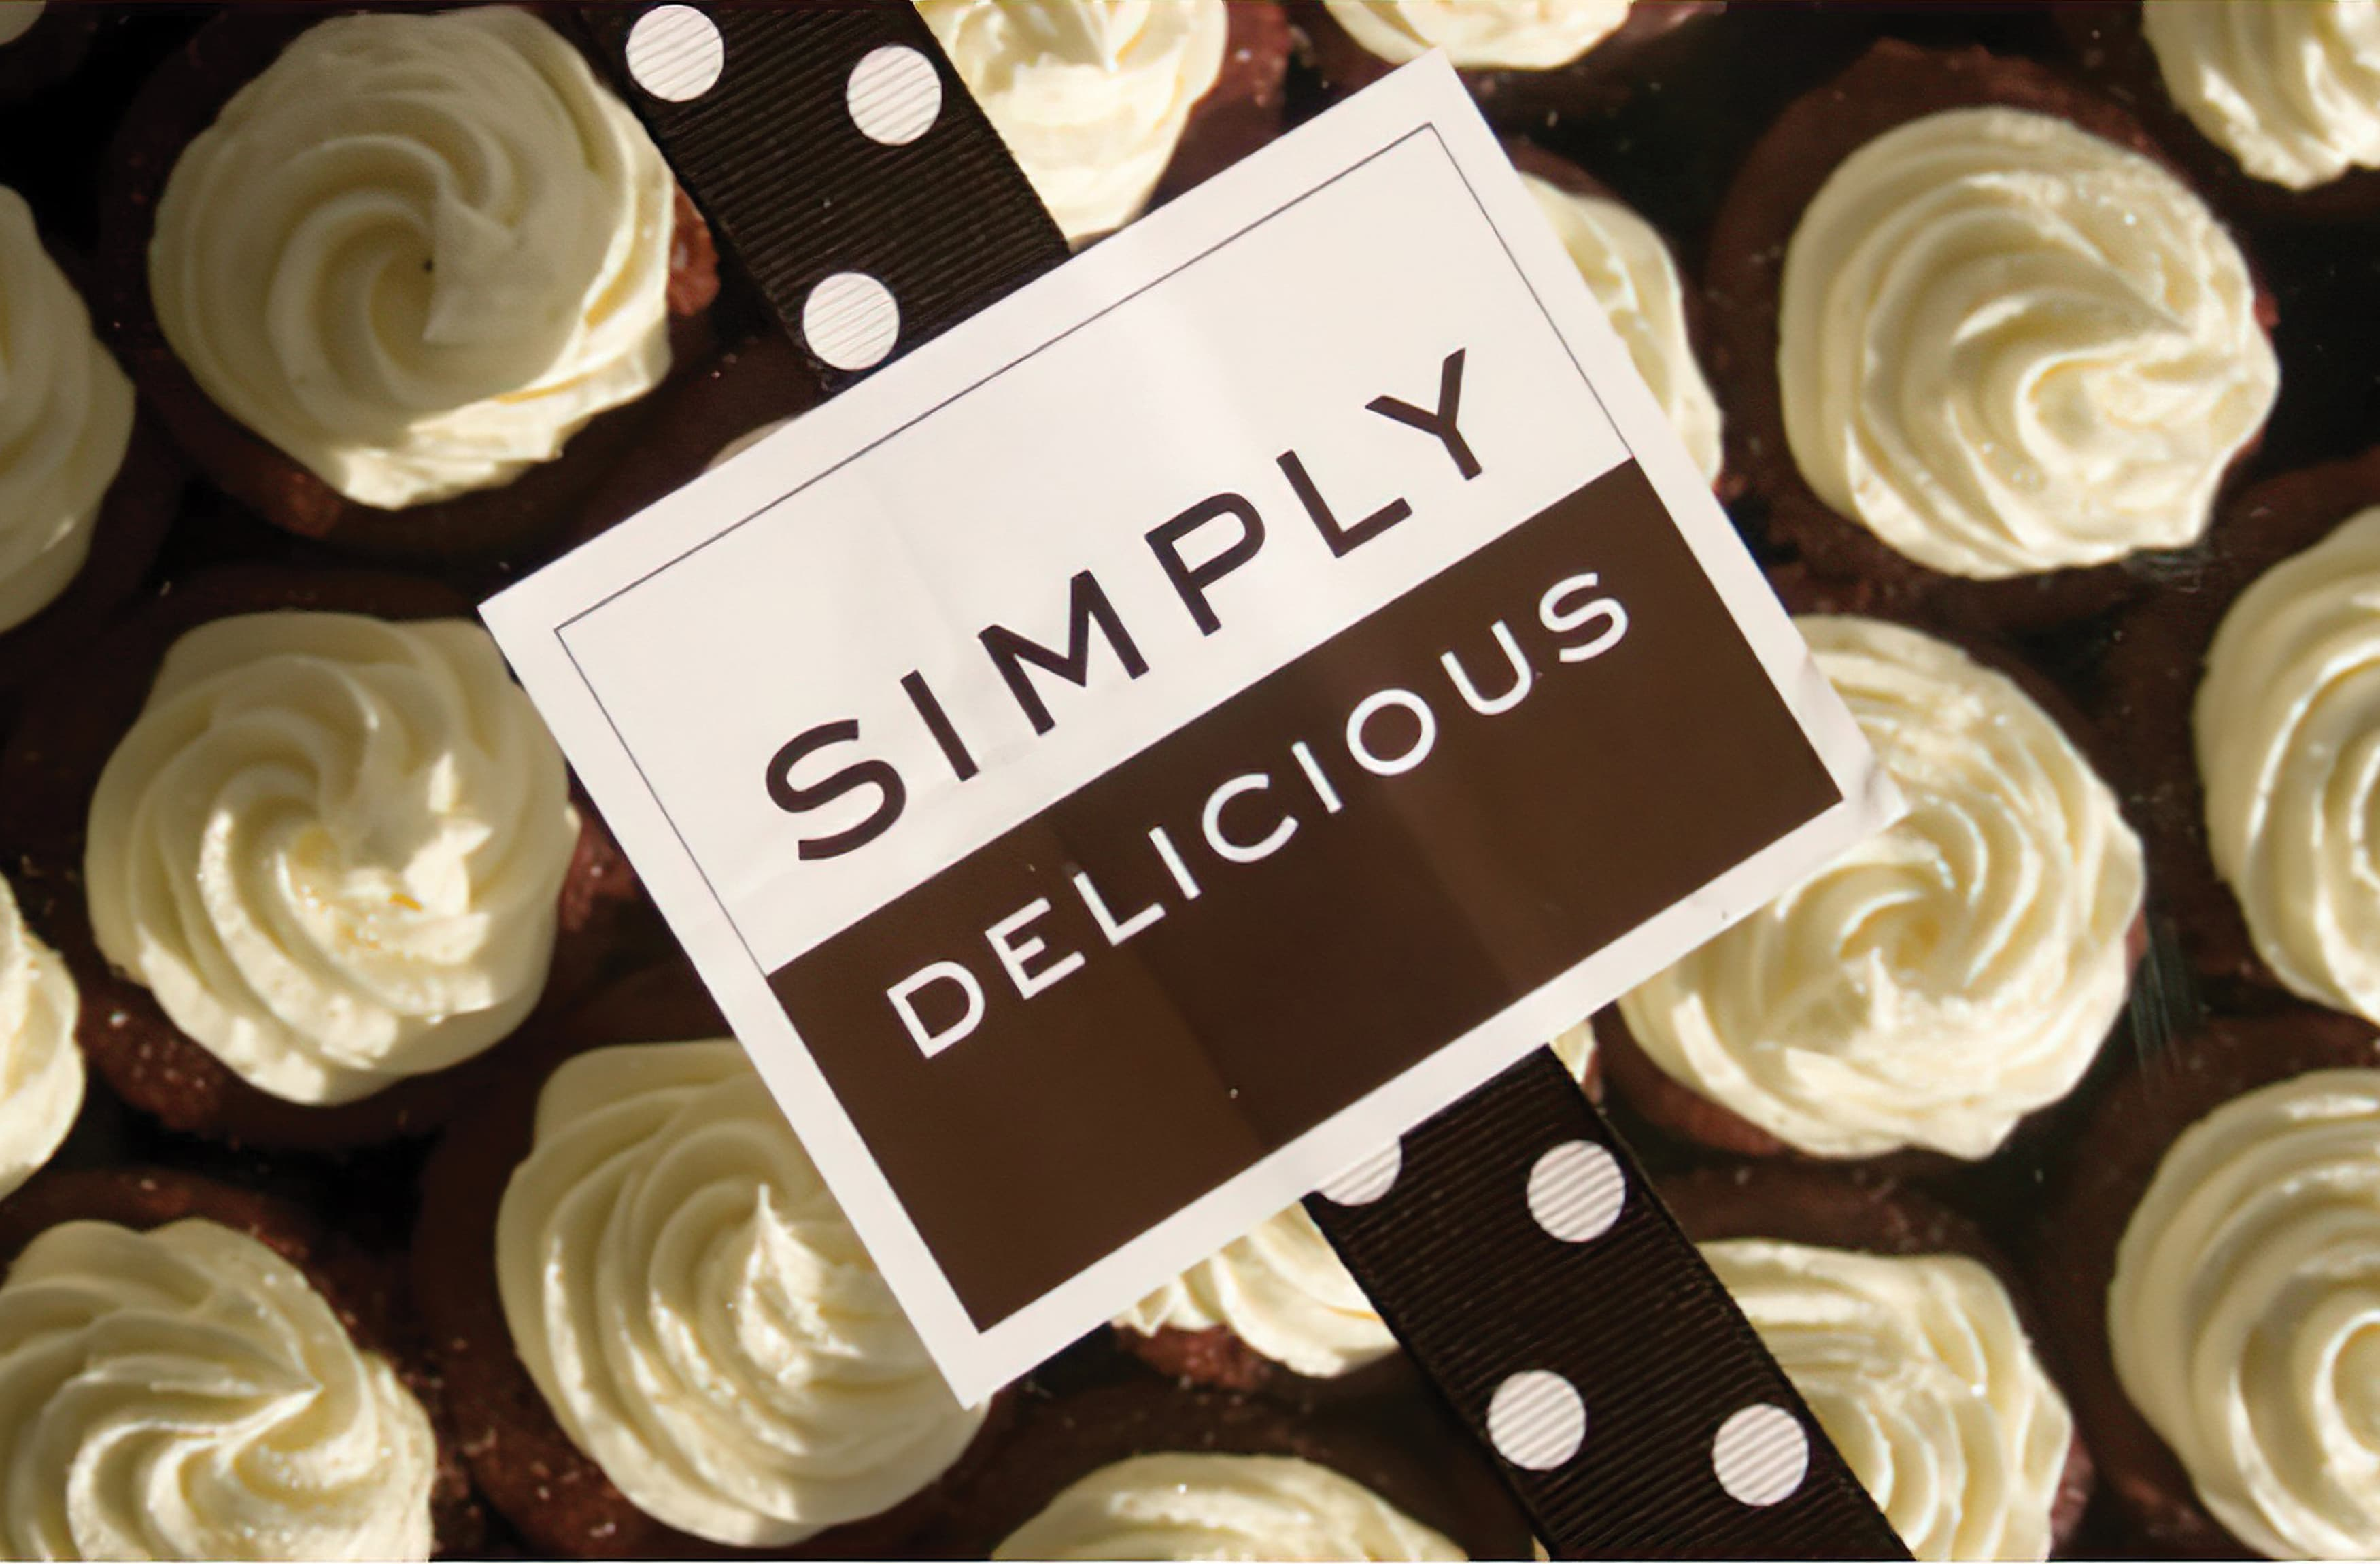 The new Simply Delicious brand on top of some baked goods.